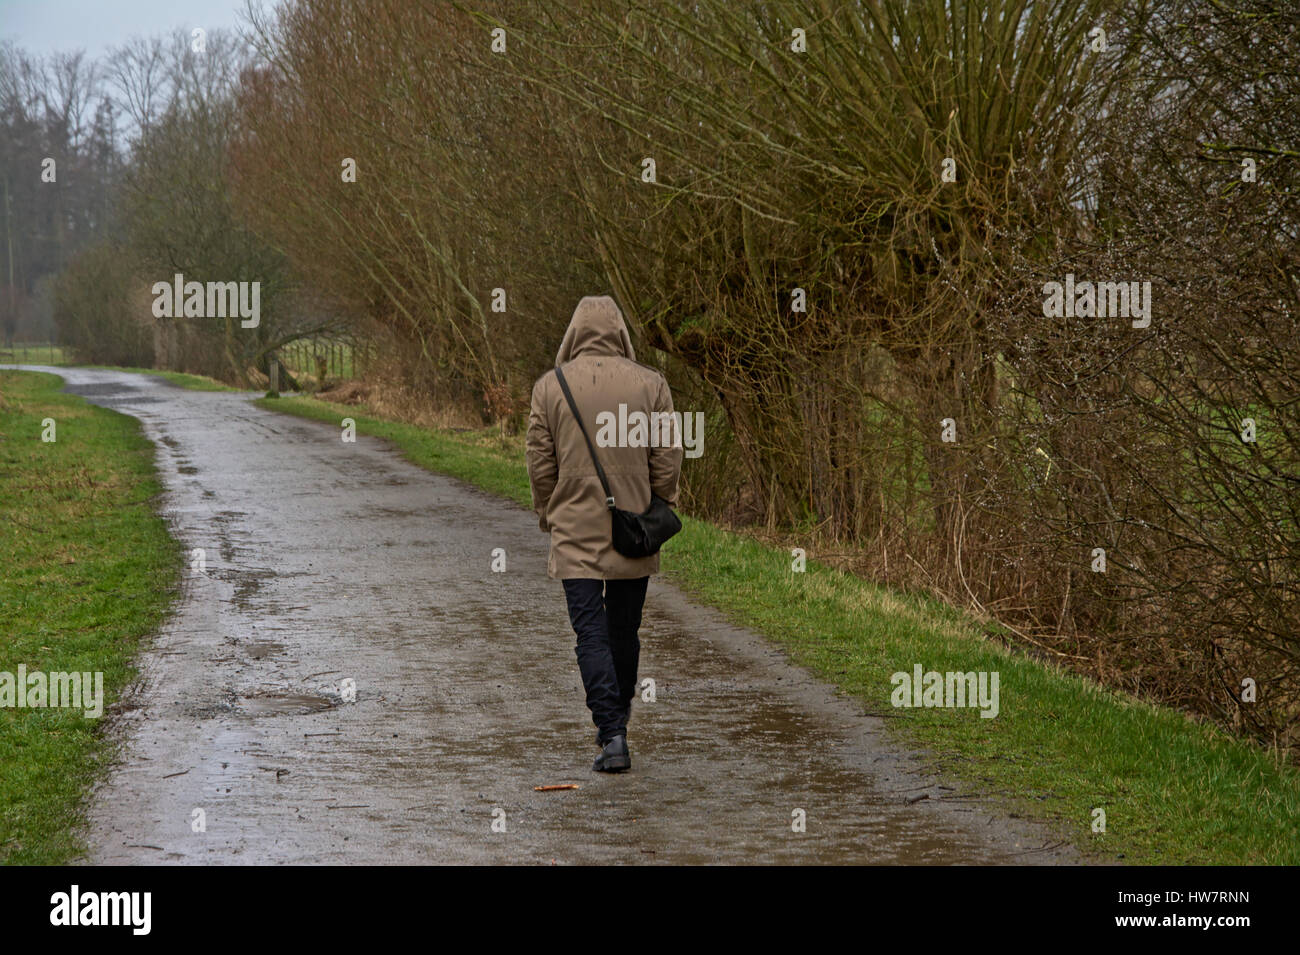 lonely man walking in nature on a rainy day stock photo